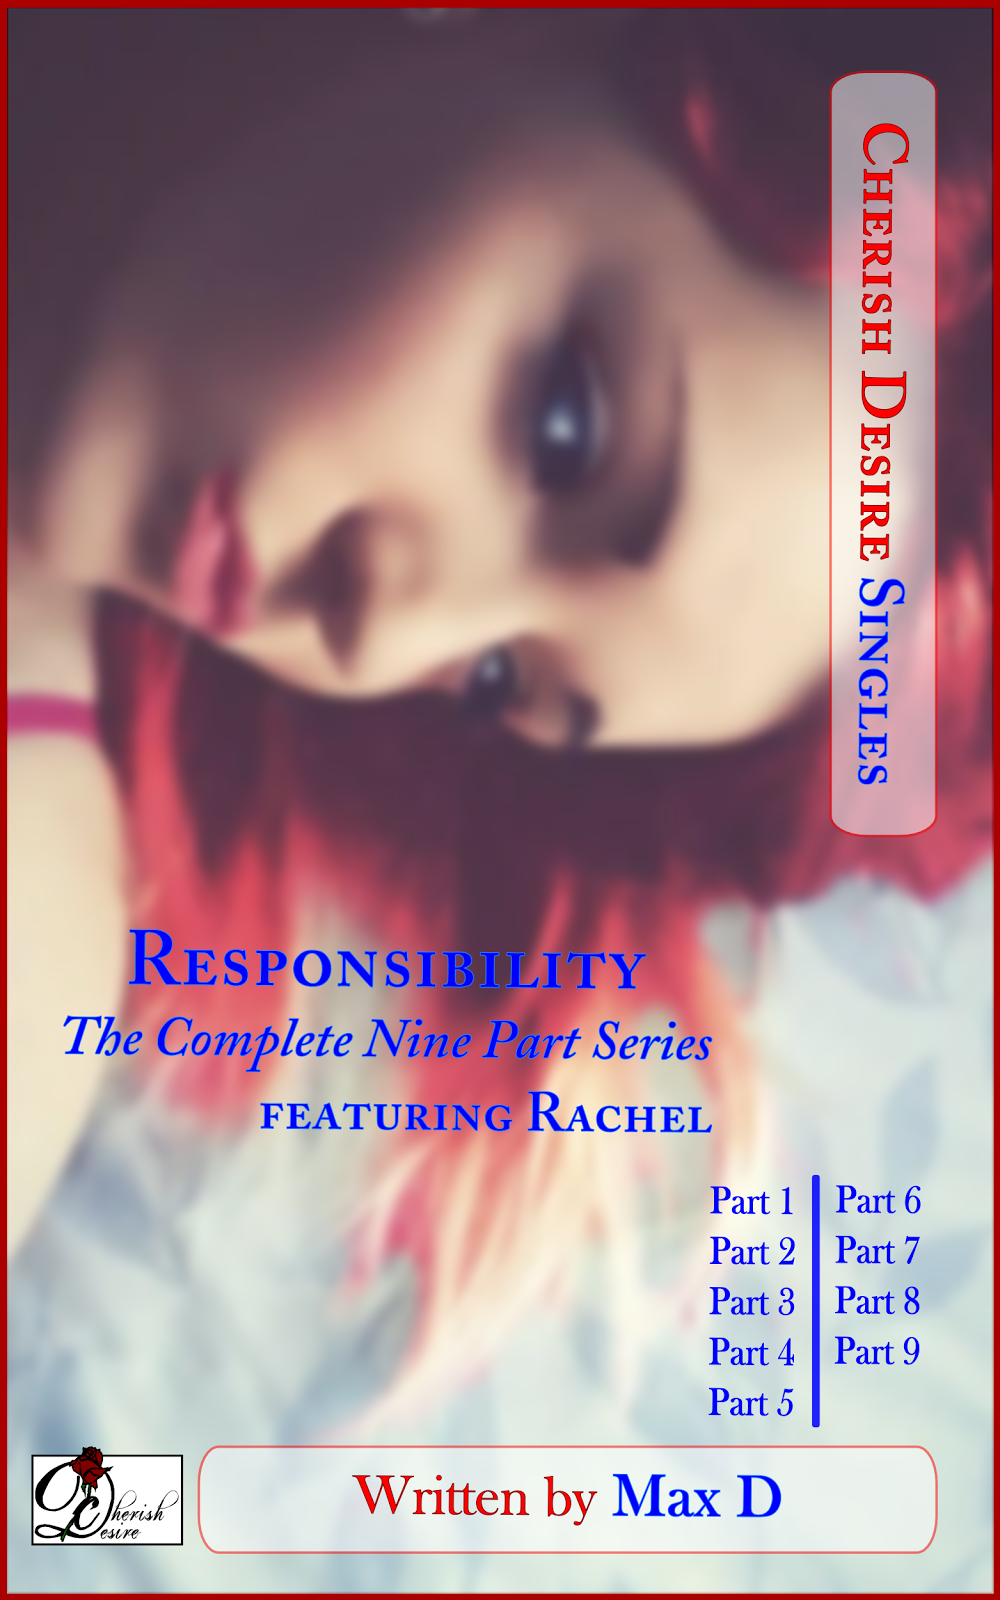 Cherish Desire Singles: Responsibility (The Complete Nine Part Series) featuring Rachel, Max D, erotica